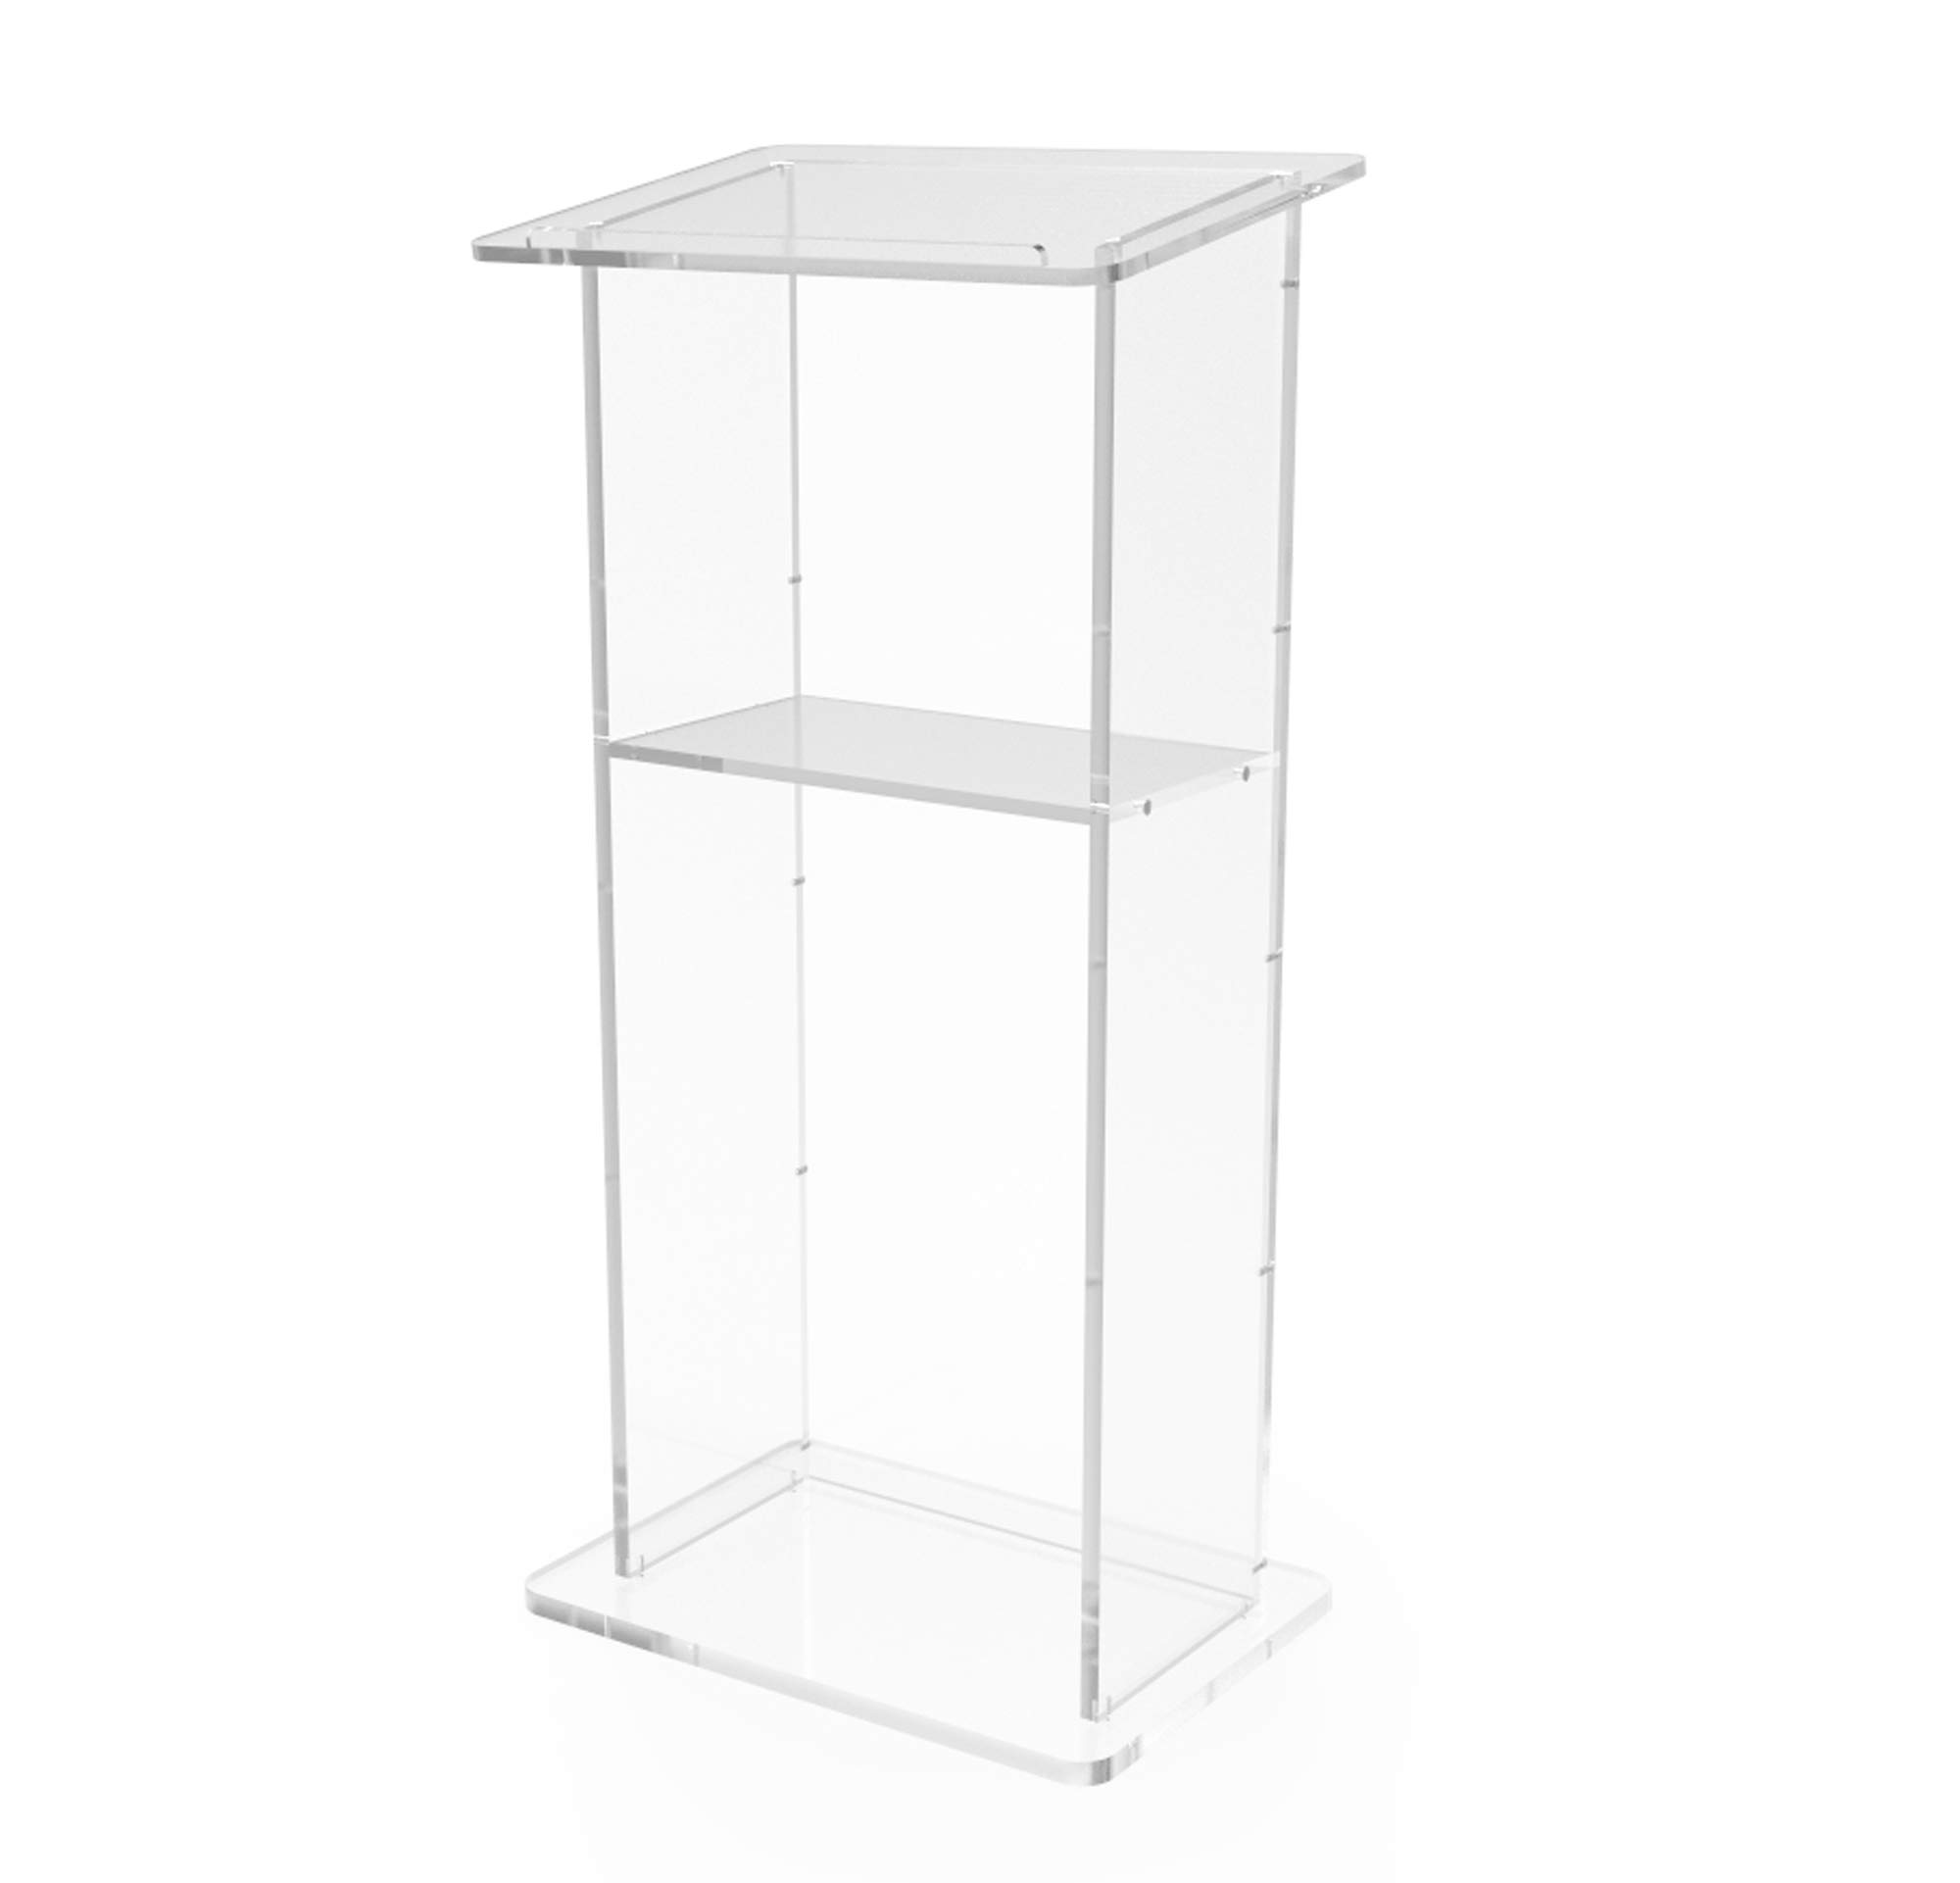 FixtureDisplays Clear Acrylic Lucite Podium Pulpit Lectern 45'' Tall 1803-2 by FixtureDisplays